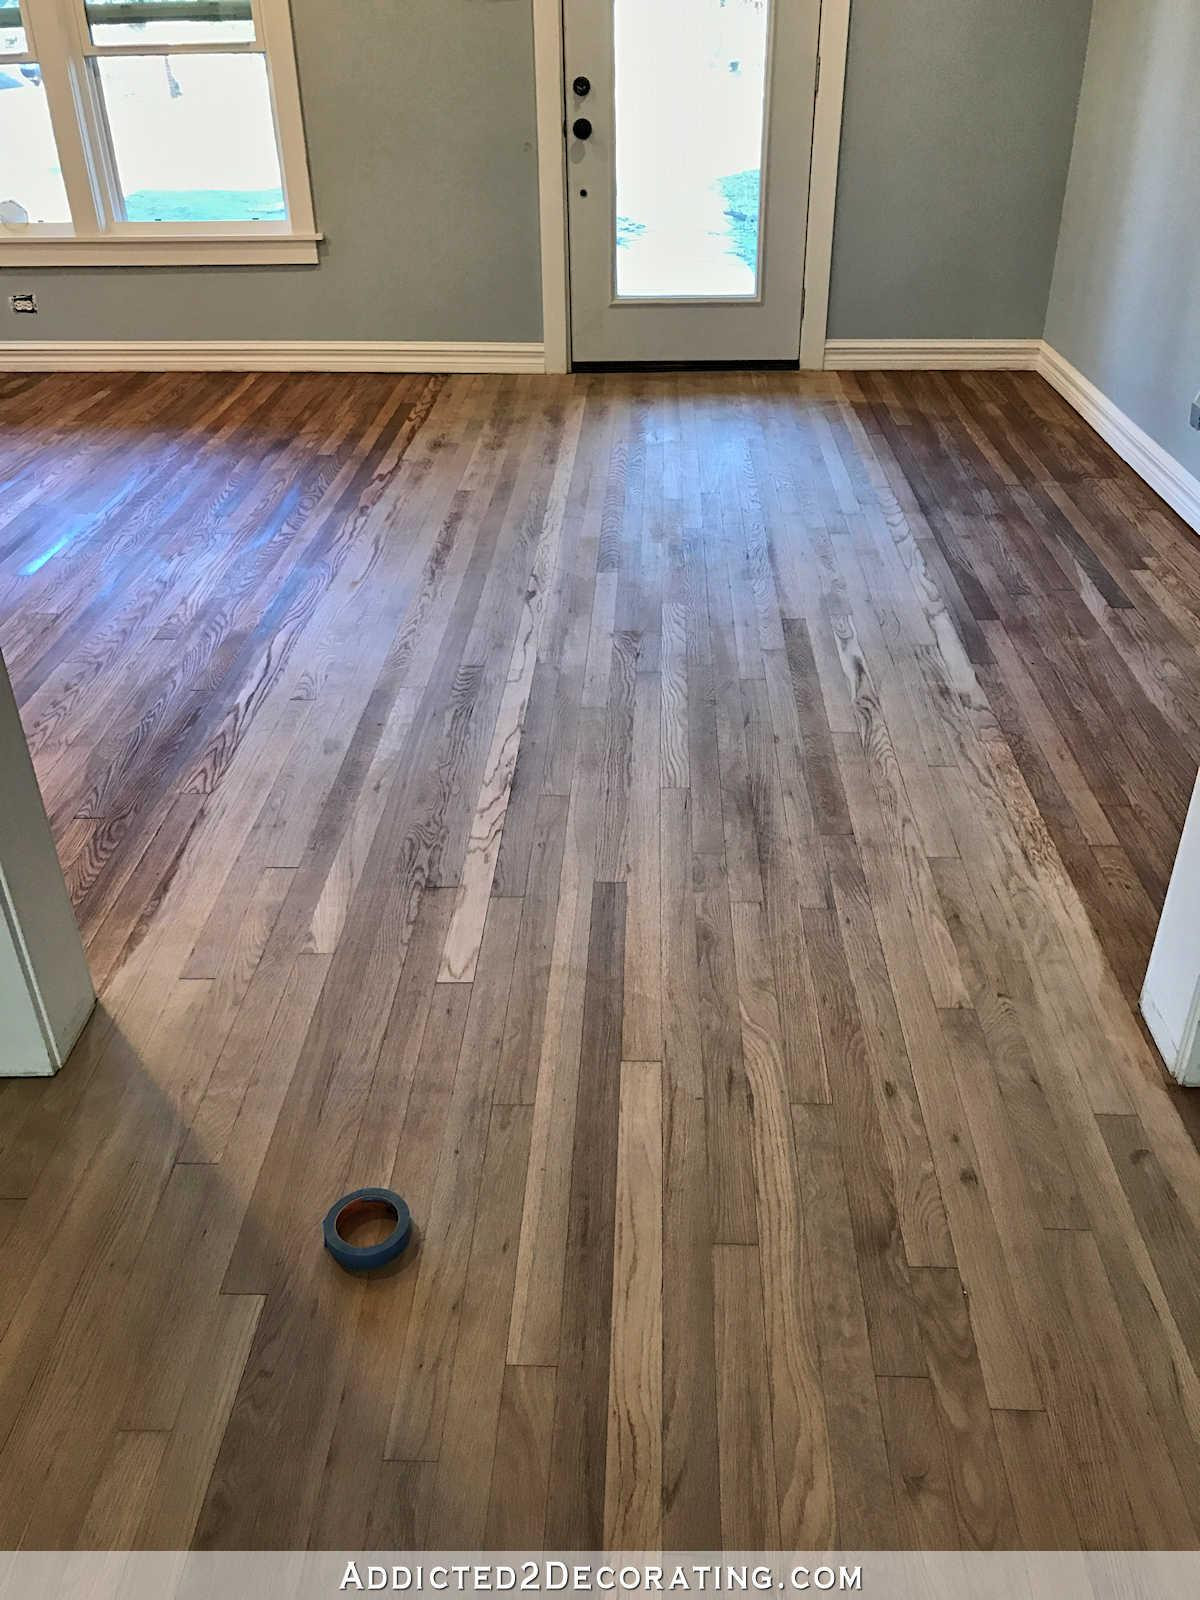 installing a hardwood floor youtube of luxury of diy wood floor refinishing collection with staining red oak hardwood floors 4 entryway and living room wood conditioner